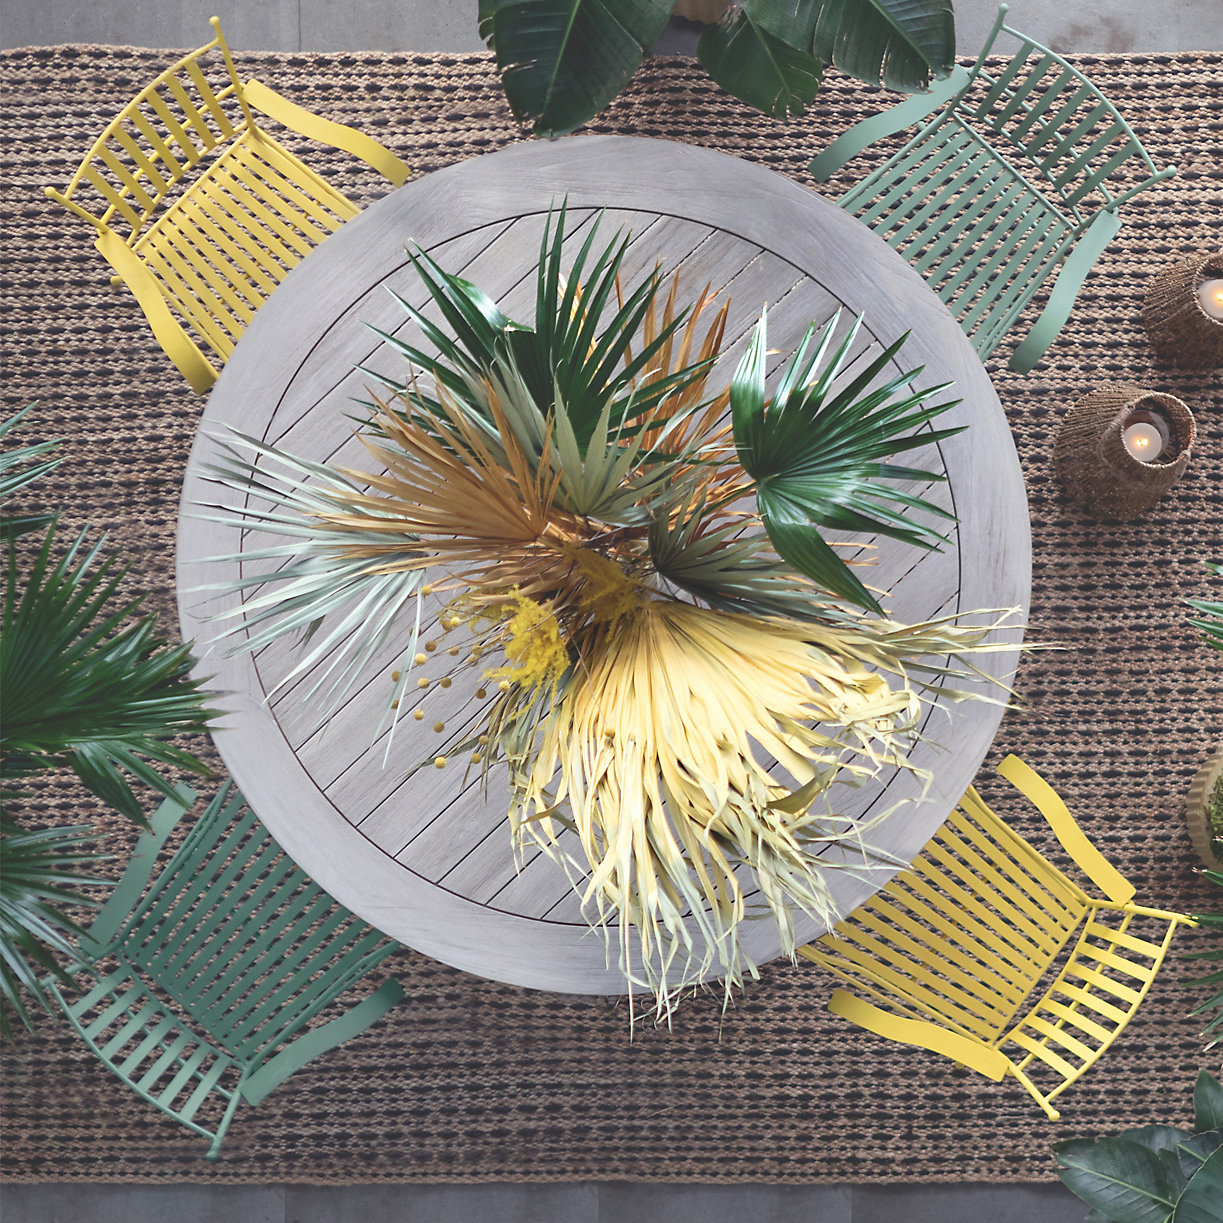 Preserved-palm-fronds-from-Terrain-99780